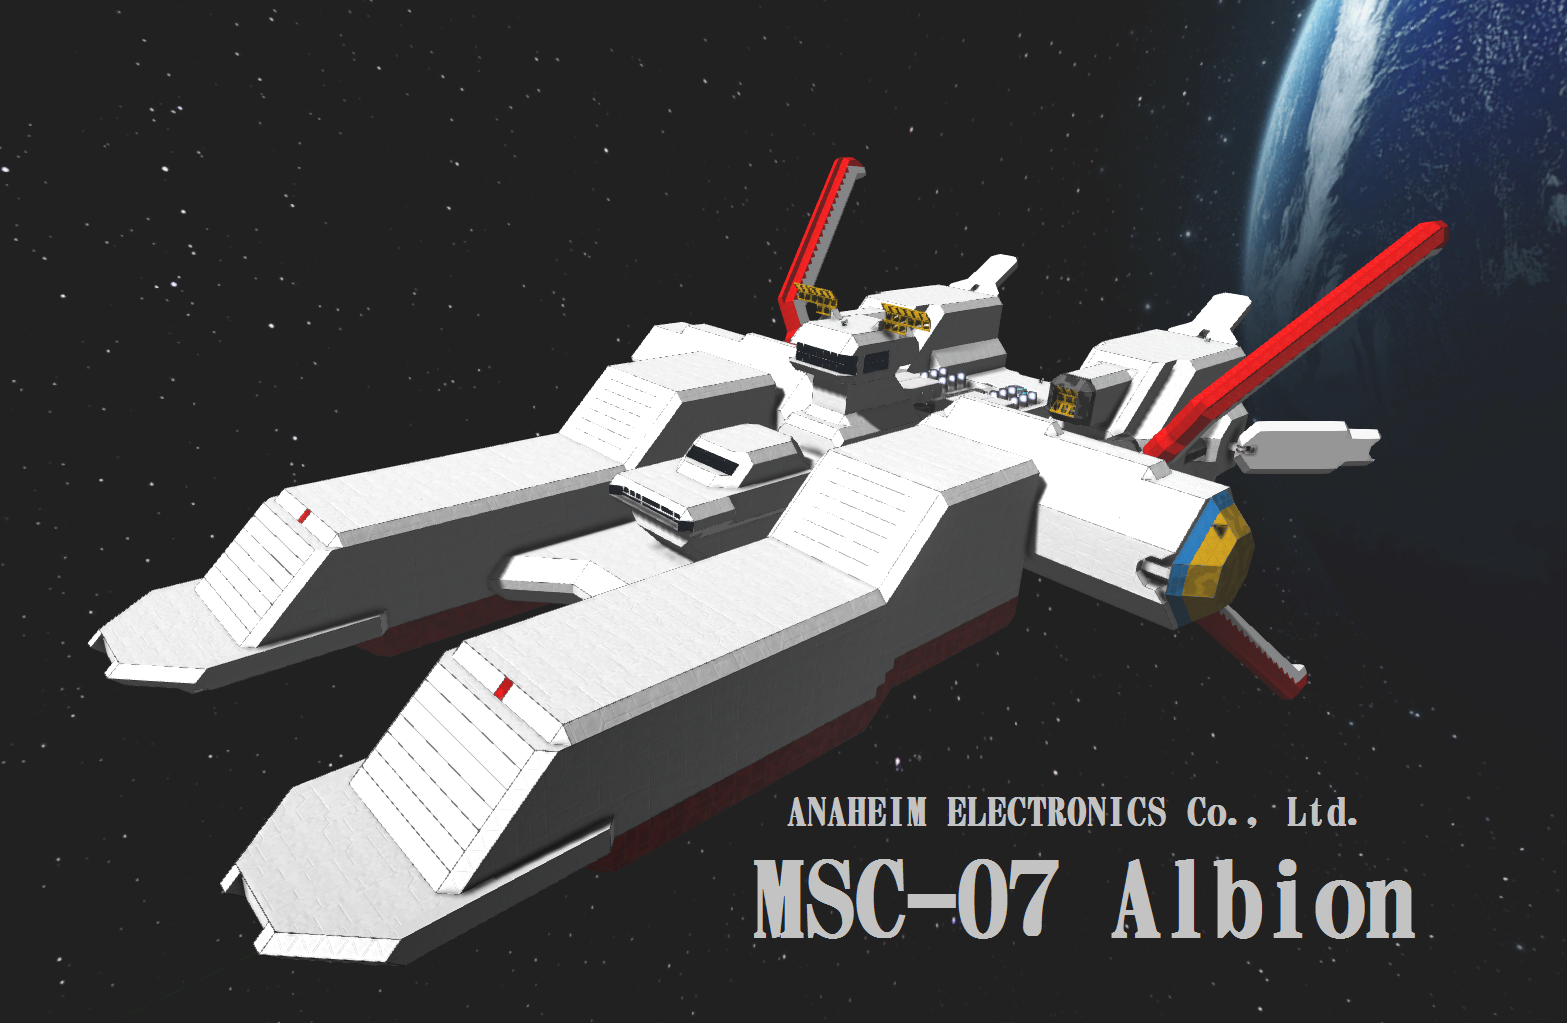 space engineers for mechs. DAF98B52BF061A74E92BB1B8B2432826FF018A54